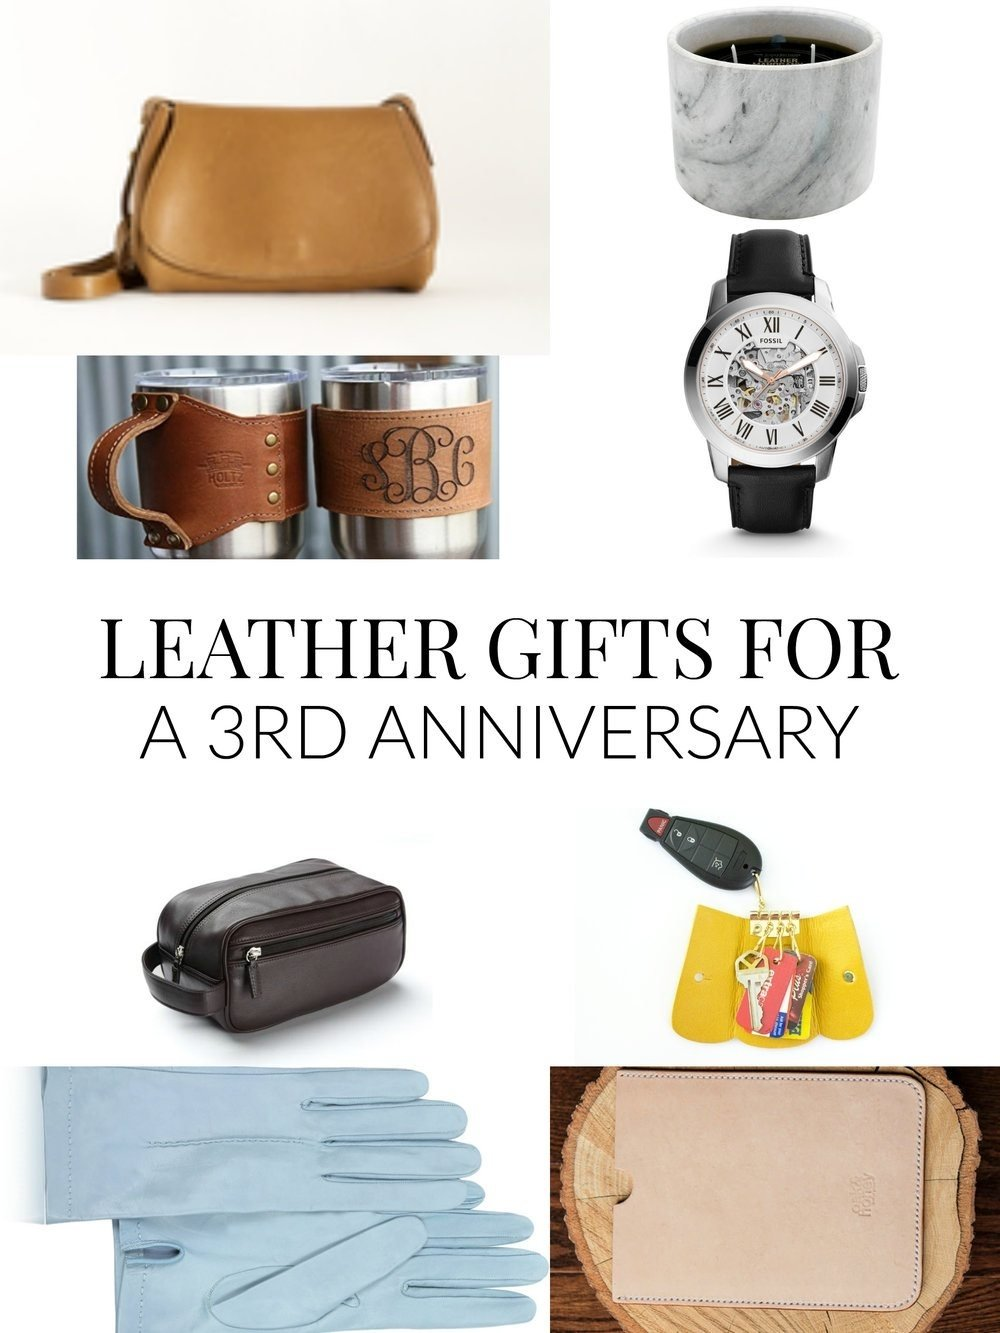 10 Awesome 3rd Anniversary Gift Ideas For Her 2019